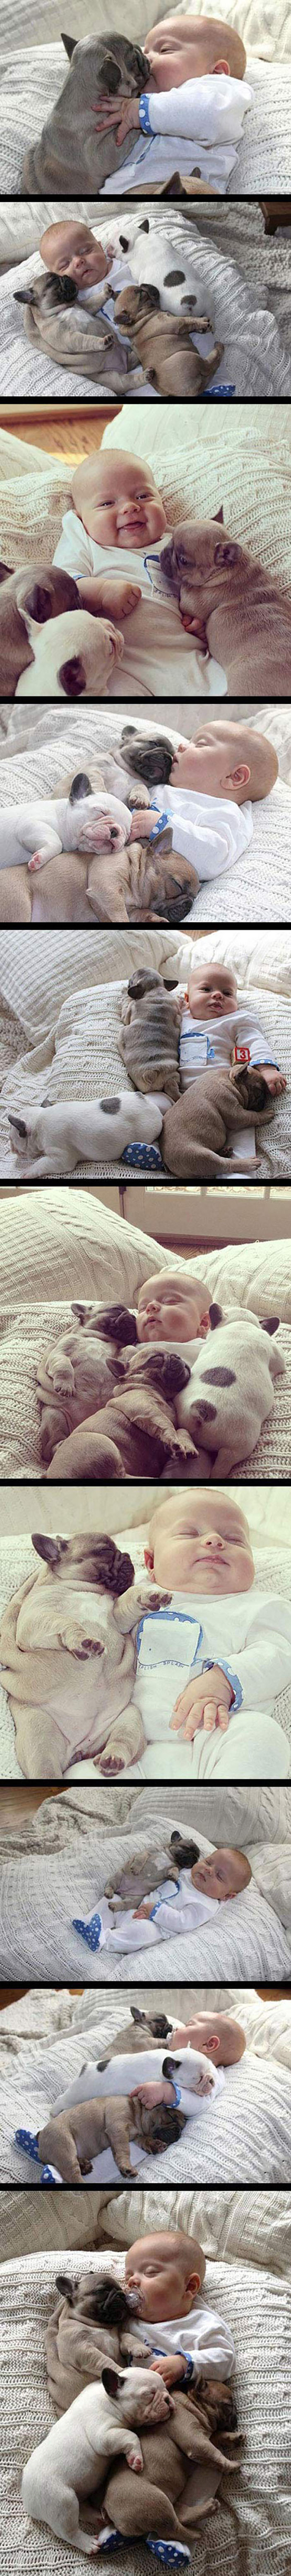 Can't Handle All This Cuteness